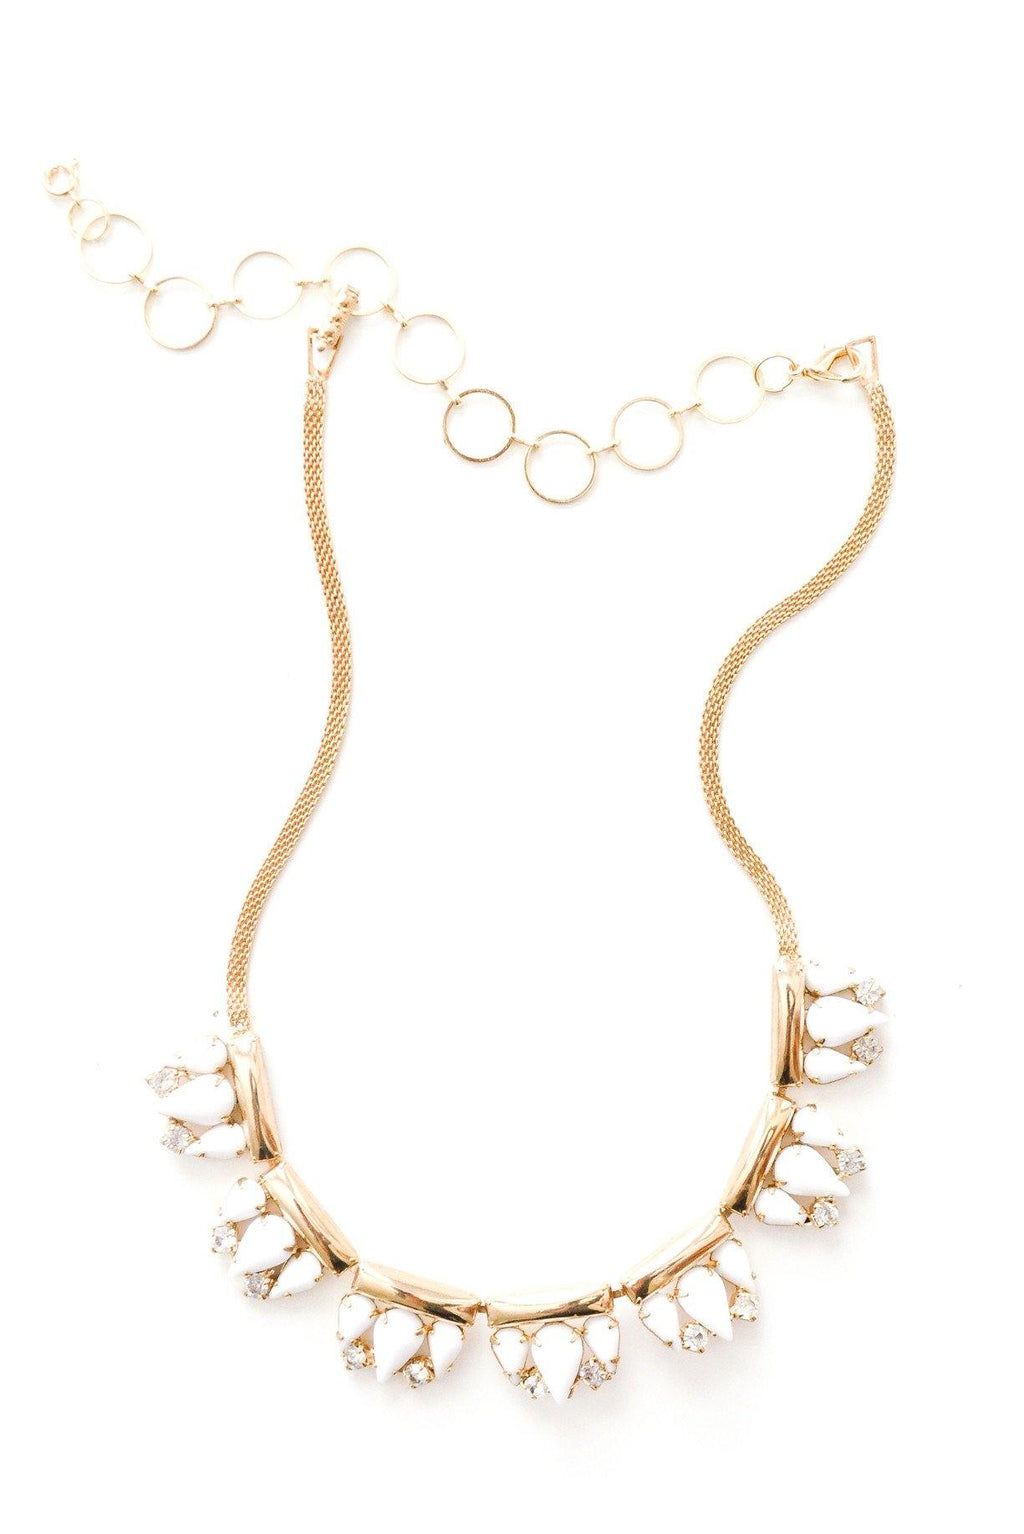 "Gold 5"" Necklace Extender"